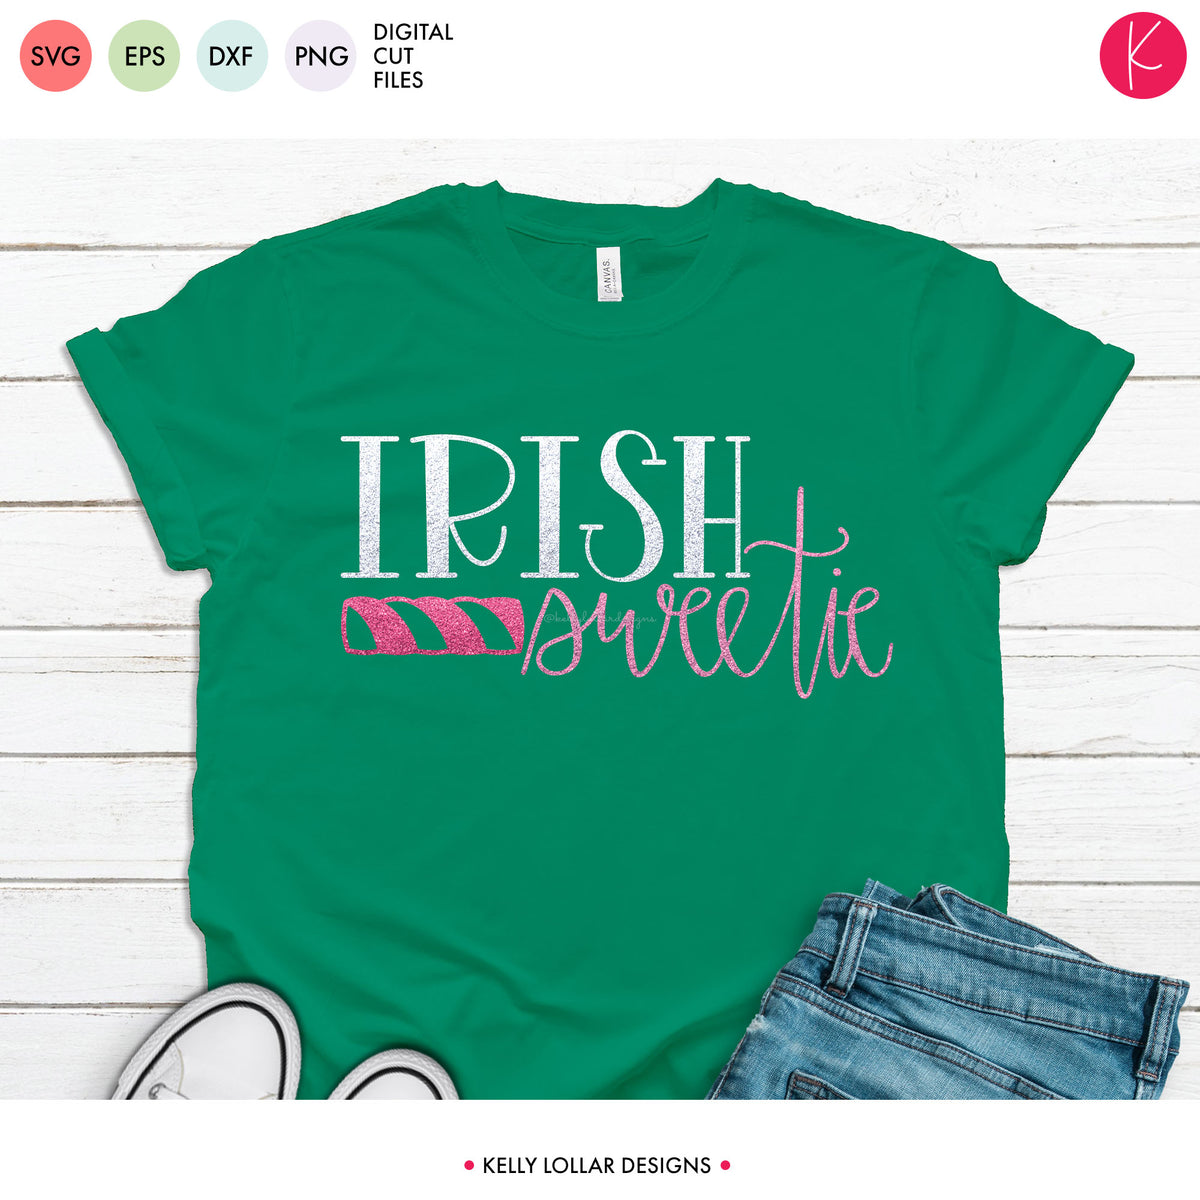 Irish Sweetie | SVG DXF EPS PNG Cut Files